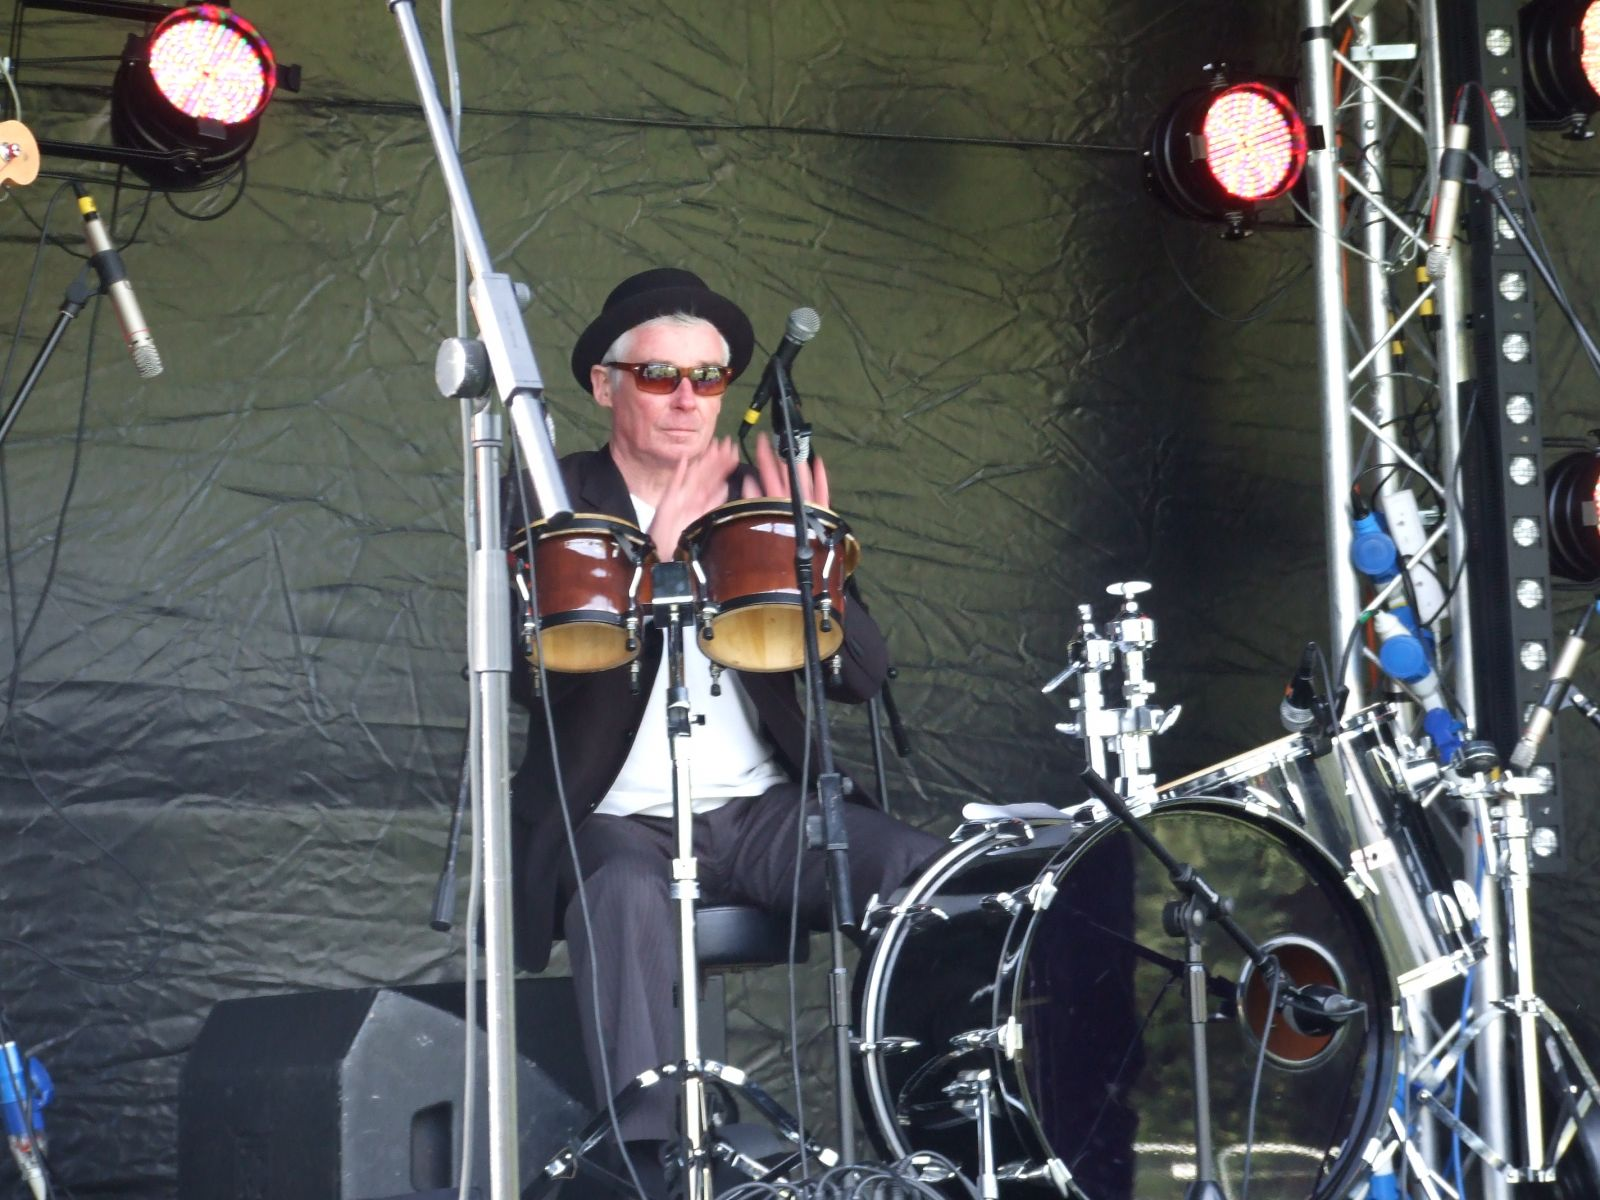 Pignose at 2011 Lechlade Festival